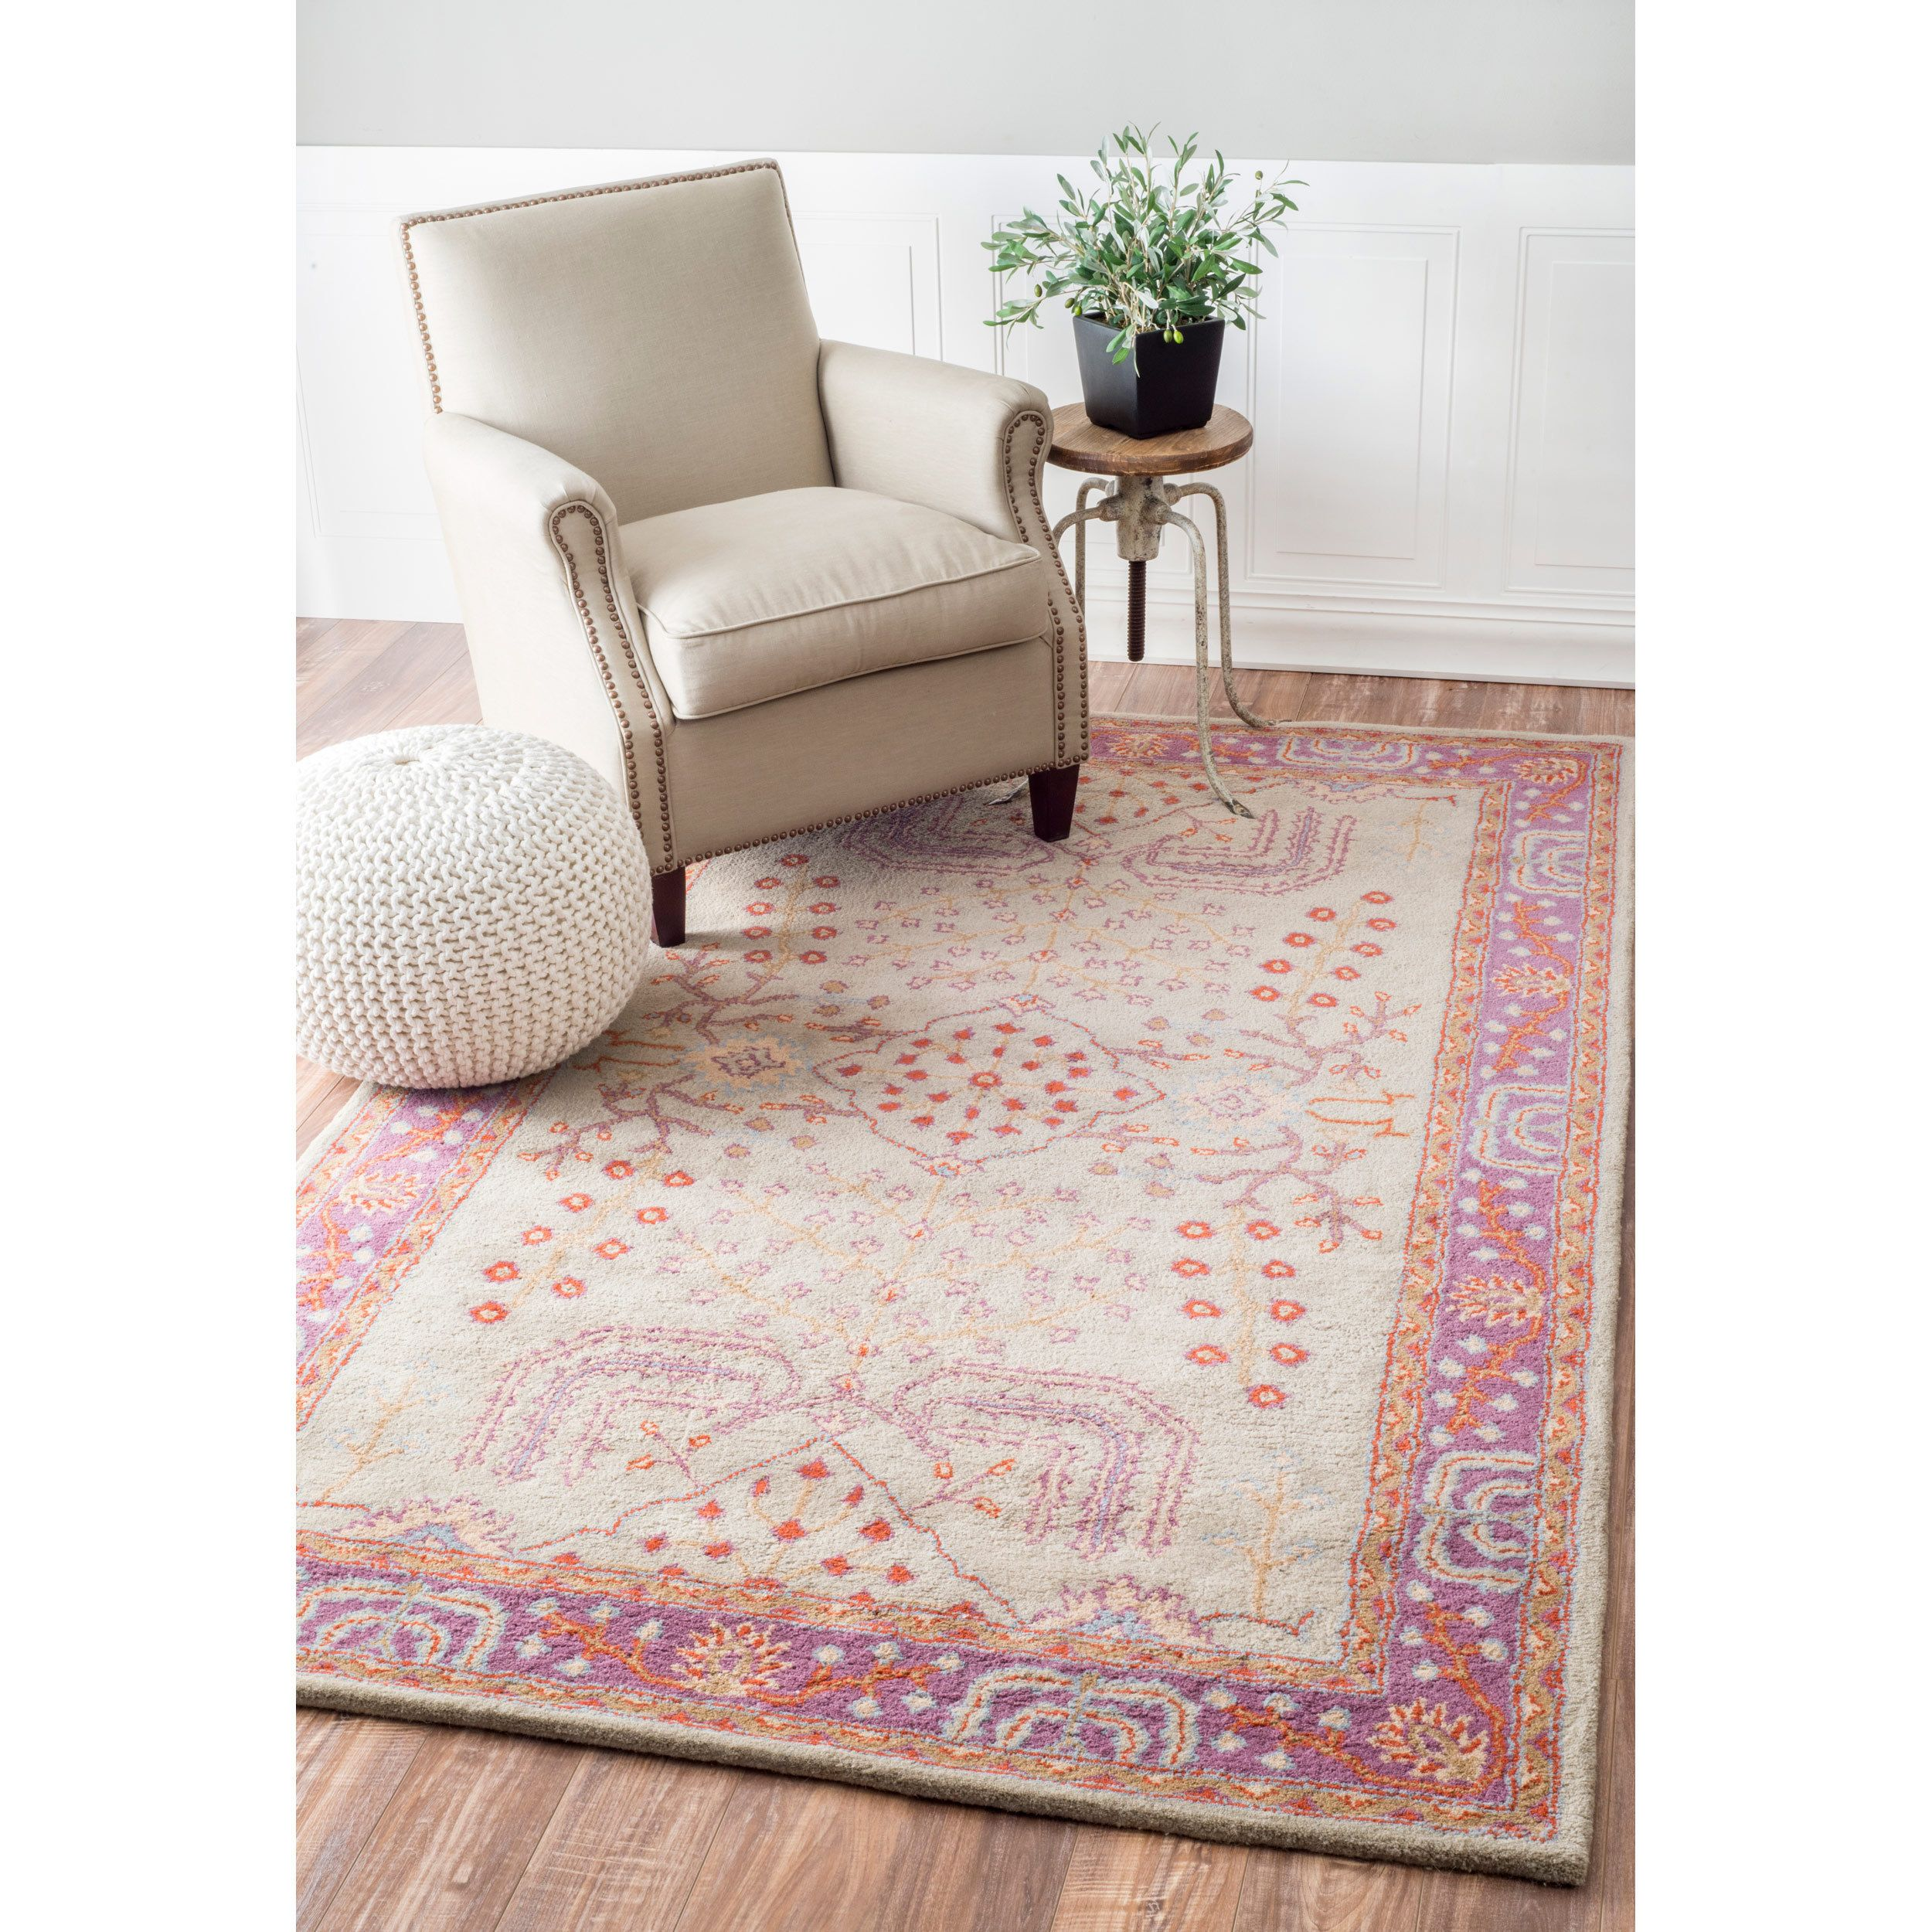 This handmade area rug uses subtle and modern colors to match today's interiors. Made with both Indian and New Zealand wool, the pile is very plush and will add the look of luxury to any room.